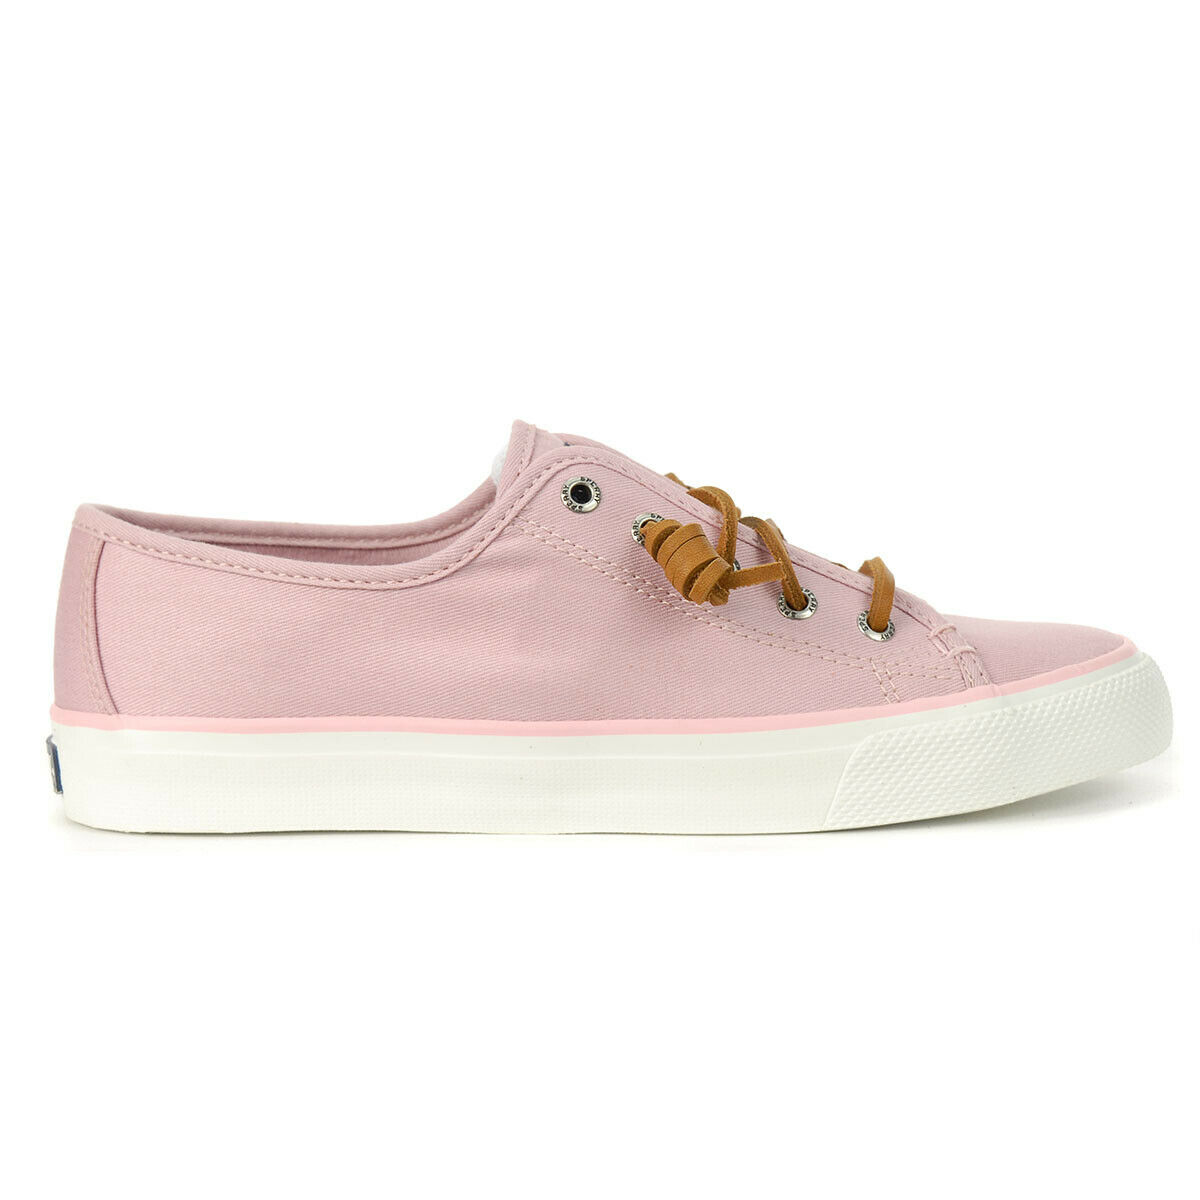 Sperry Top-Sider Women's Seacoast Canvas 2 Lace Pink Sneakers STS97637 NEW